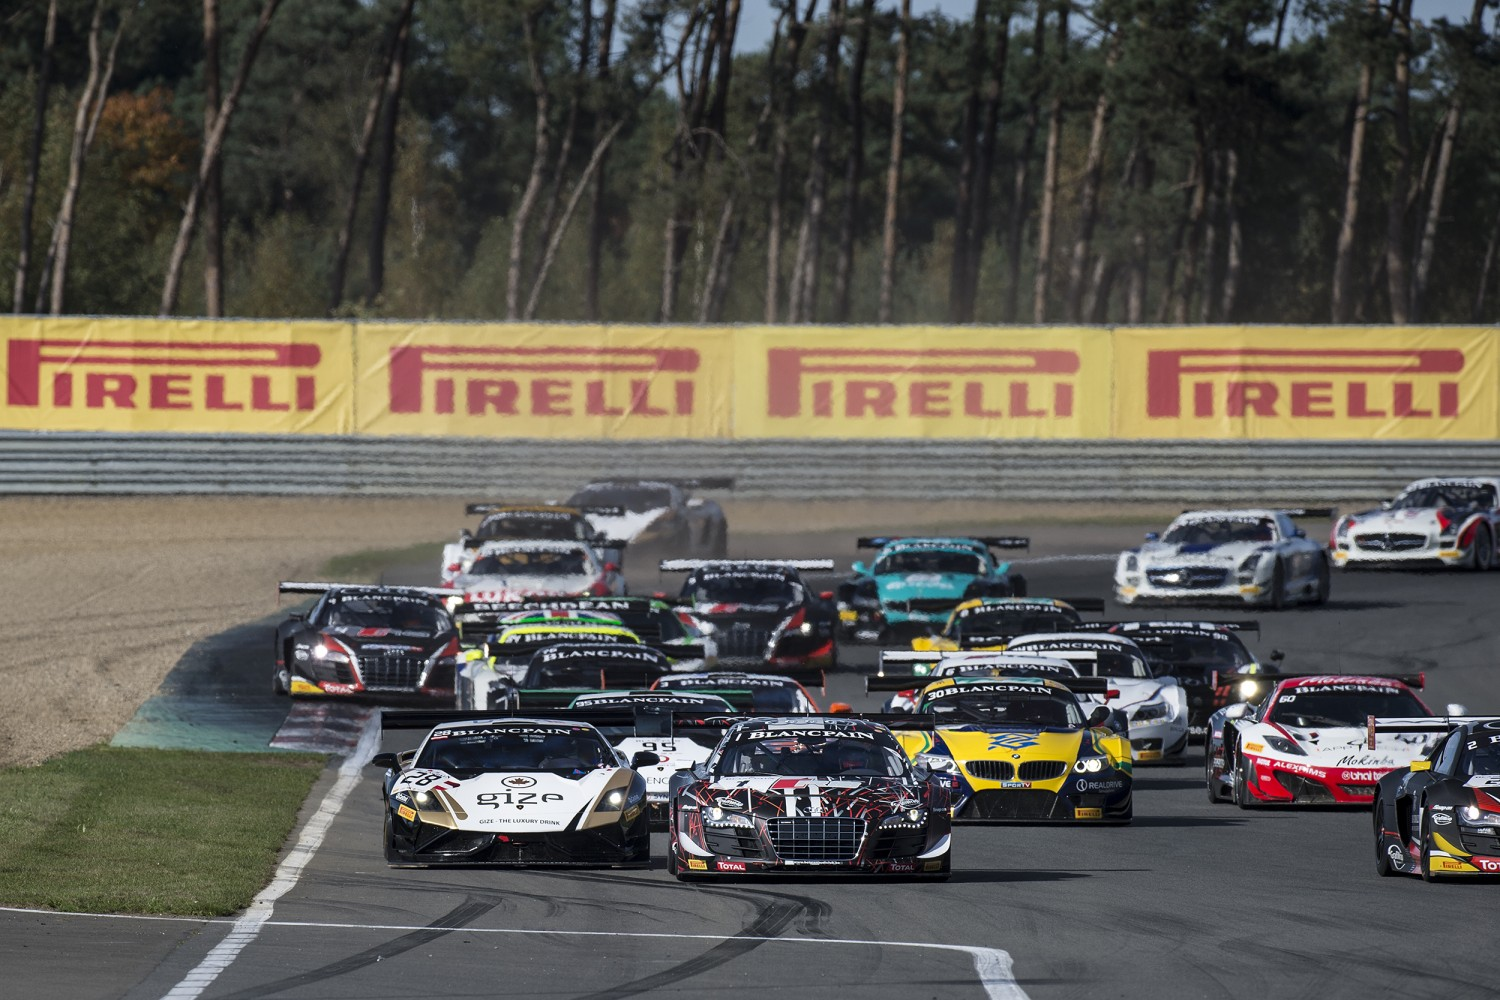 Laurens Vanthoor and Cesar Ramos dominate Zolder Qualifying Race